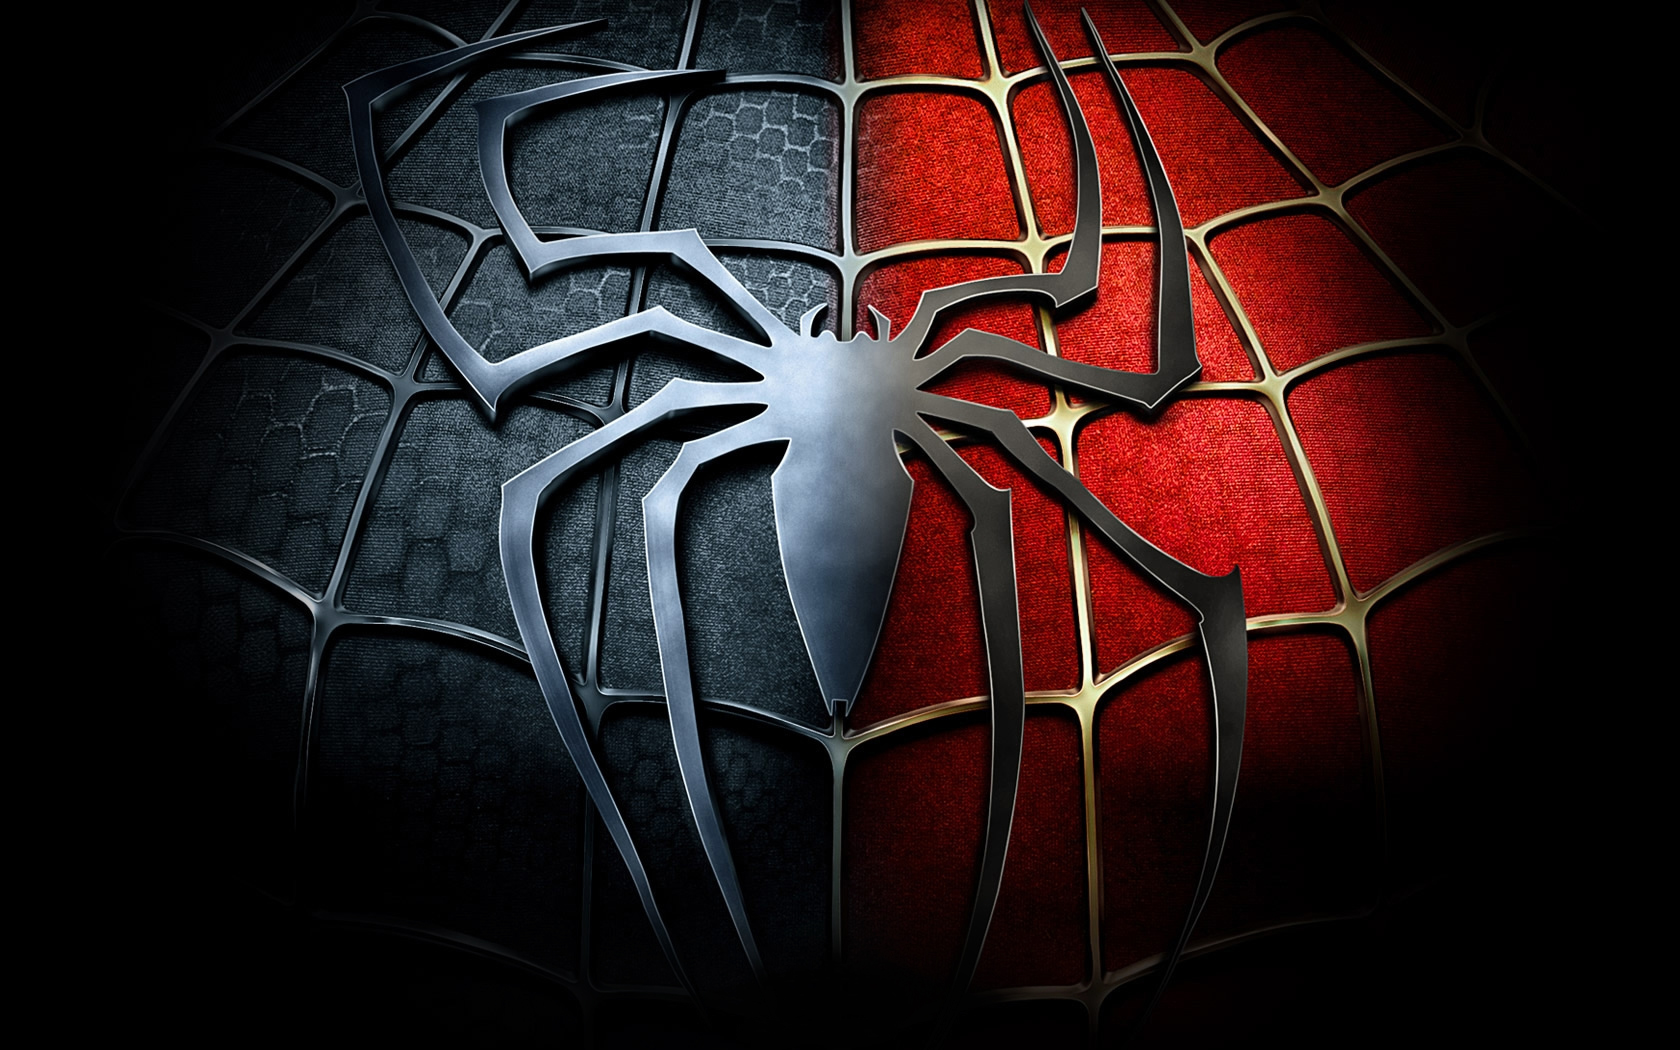 Spiderman Logo 39627 1680x1050 px ~ HDWallSource.com